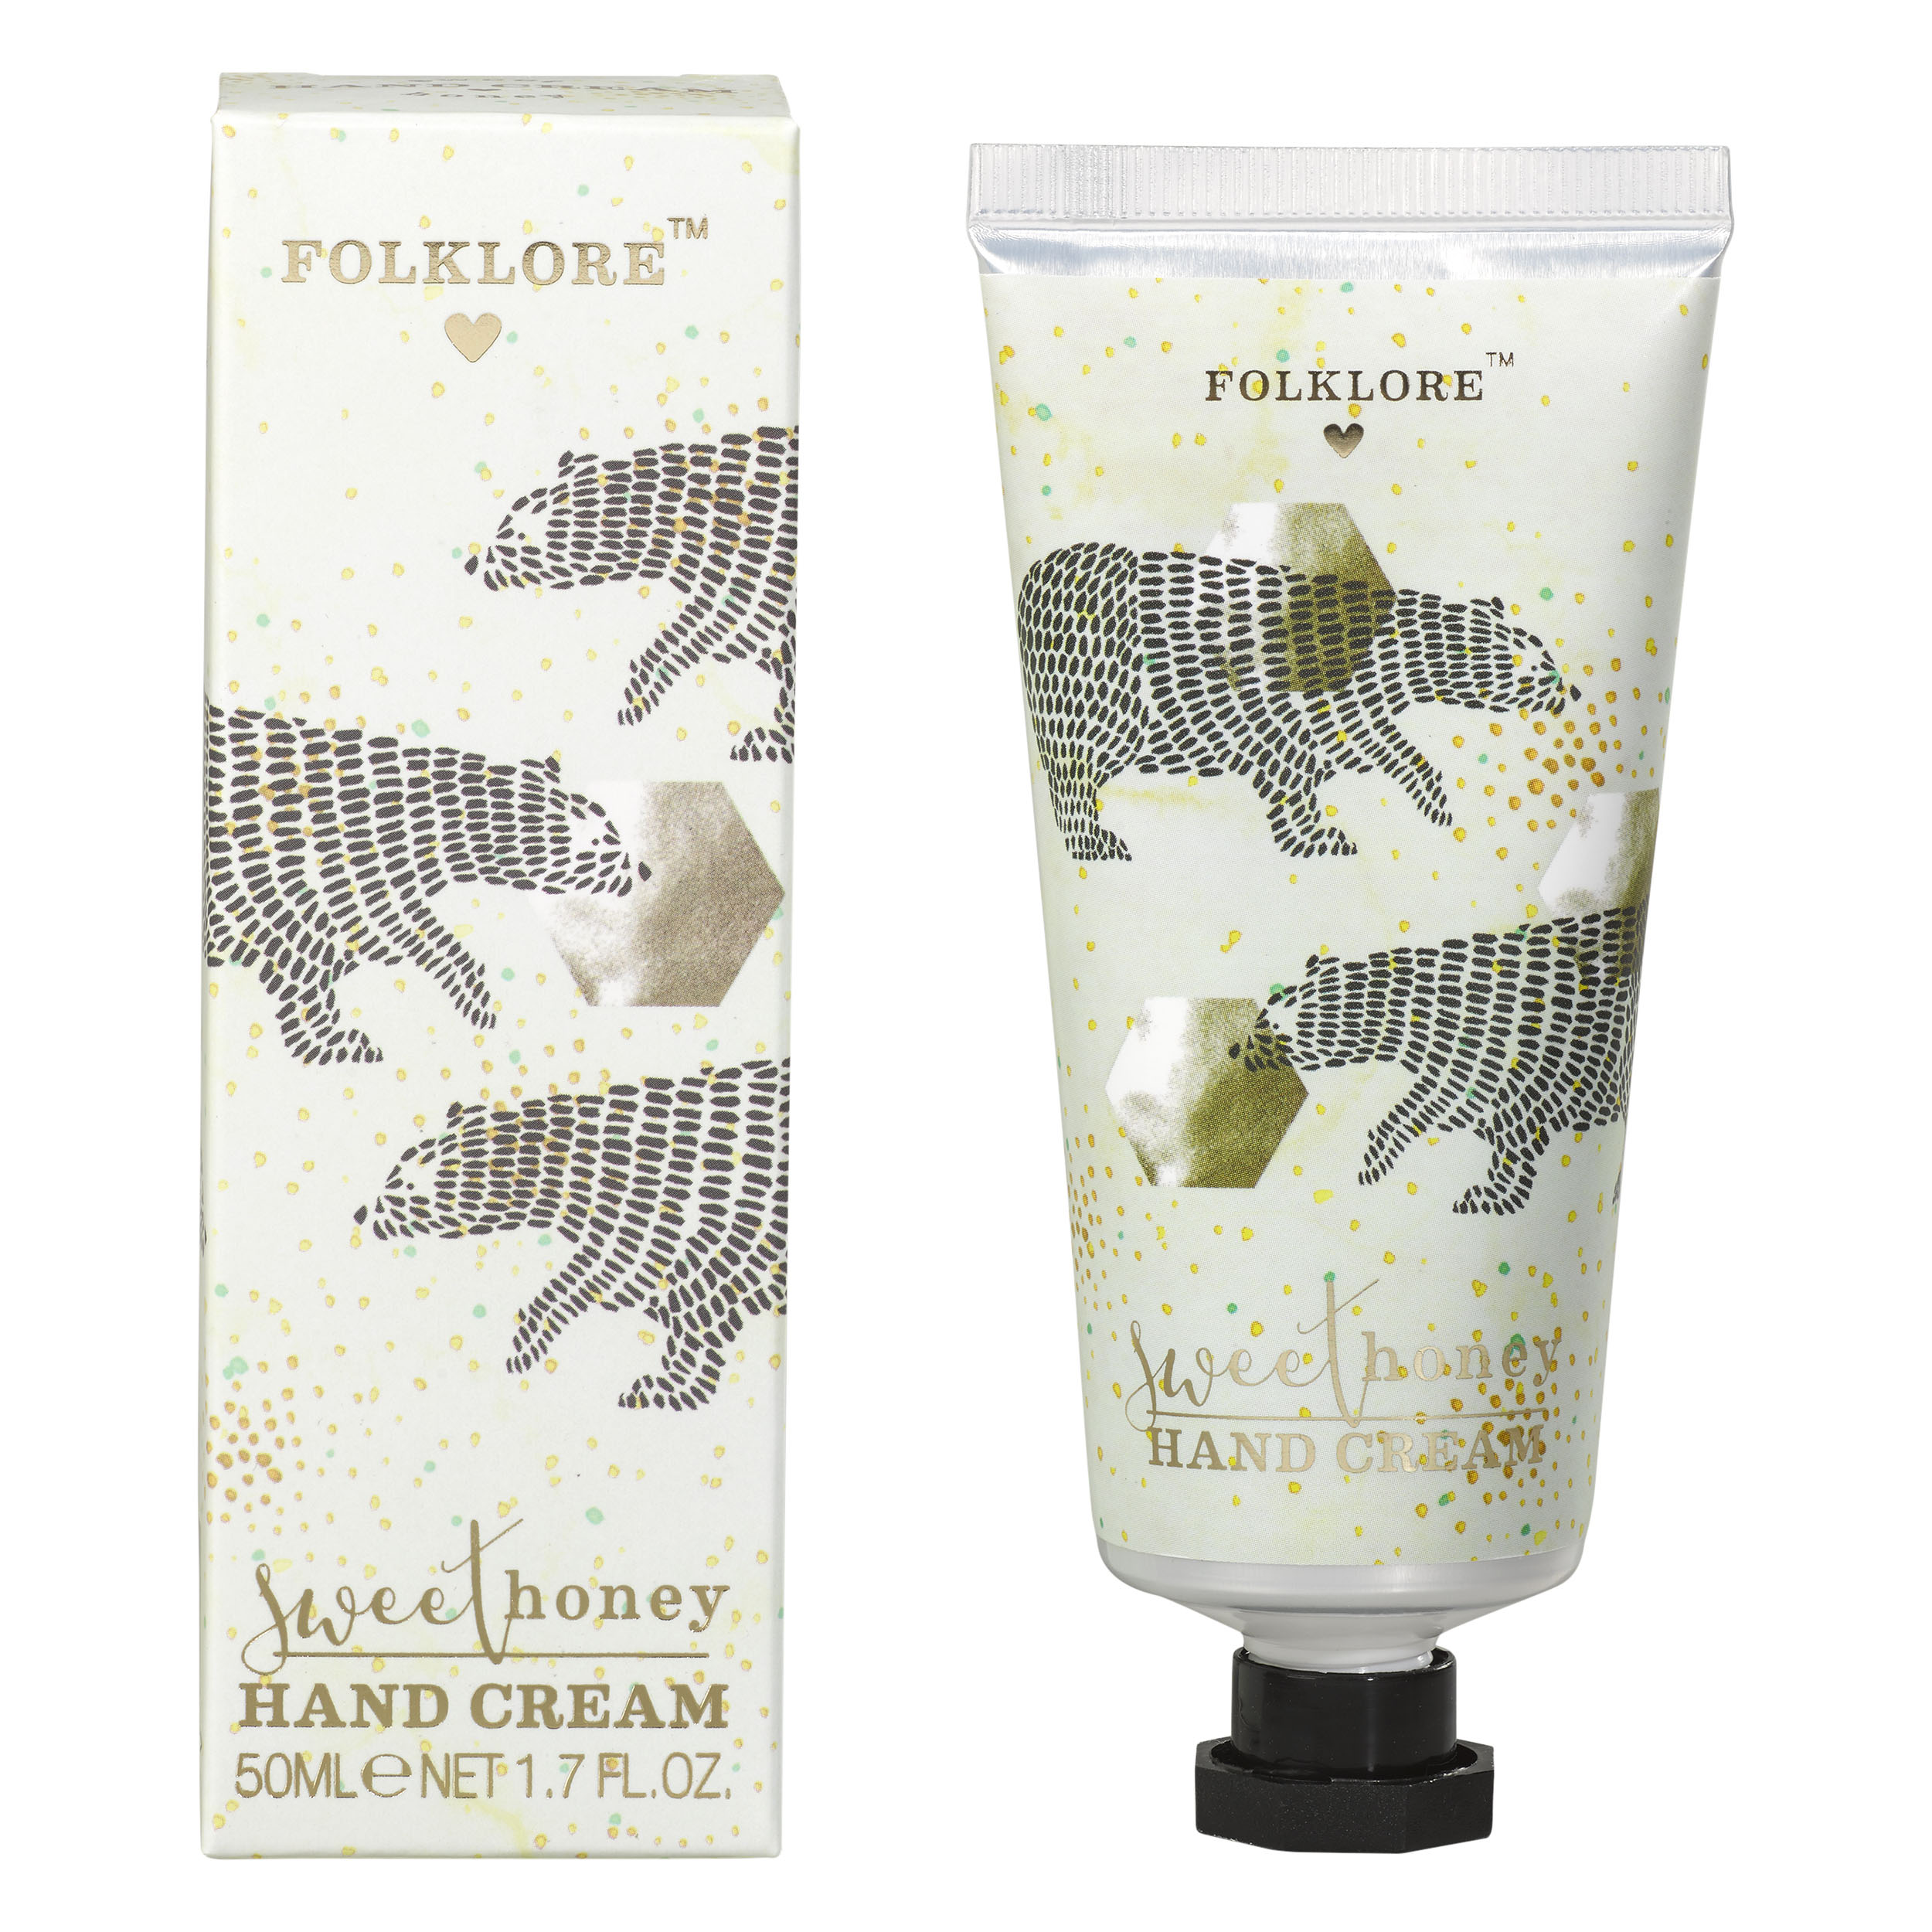 Sweet Honey Hand Cream